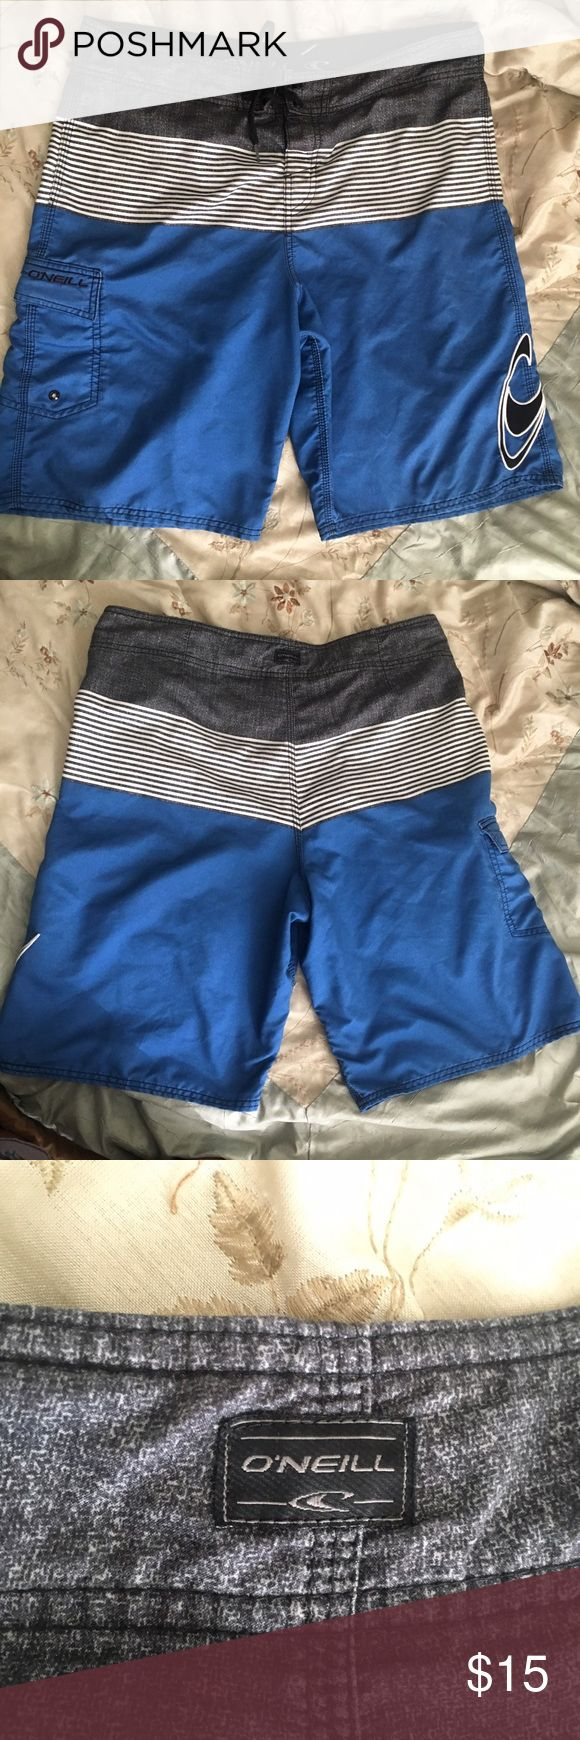 O'Neill Board shorts Previously owned but in excellent condition O'Neill Swim Board Shorts